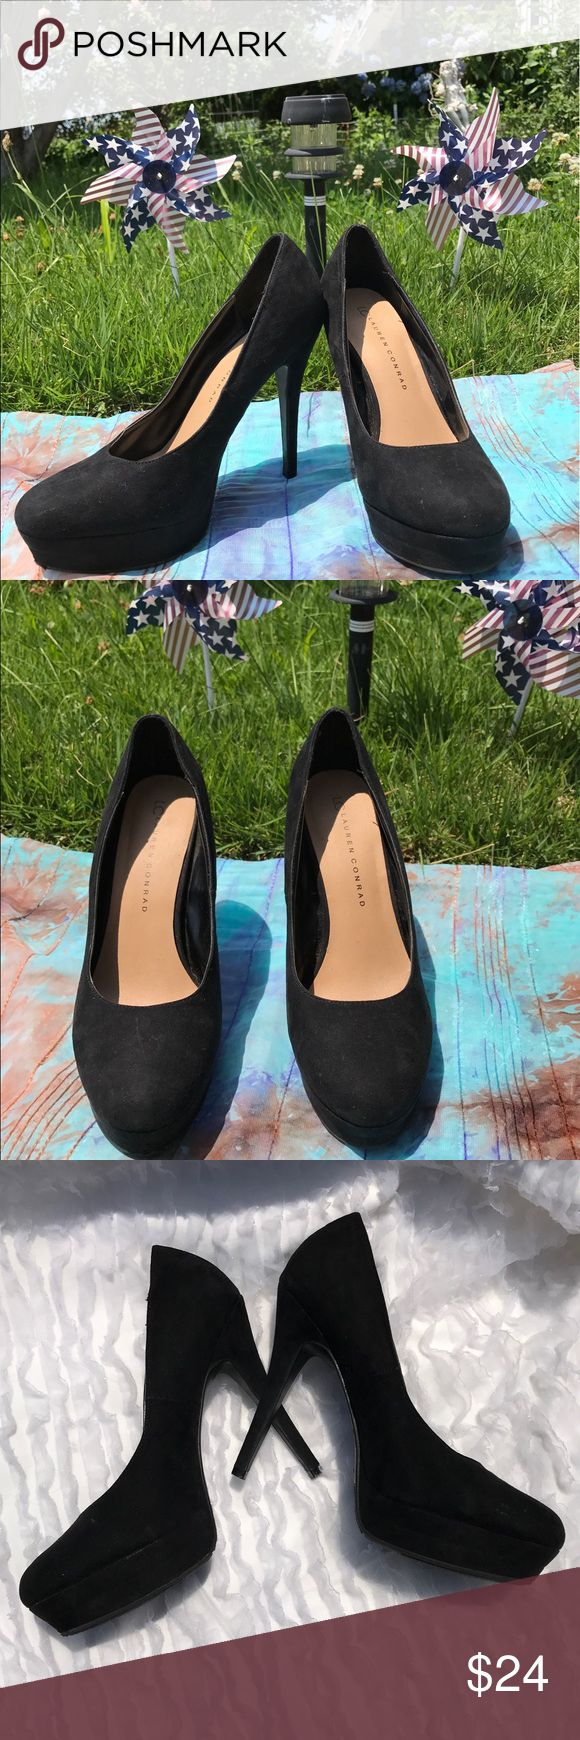 """Lauren Conrad Black Platform Heels 8.5M •Shoes are in excellent used condition •Minor, barely visible scuff on the front •Heel Height: 5"""" •Suede Like  Material LC Lauren Conrad Shoes Heels"""